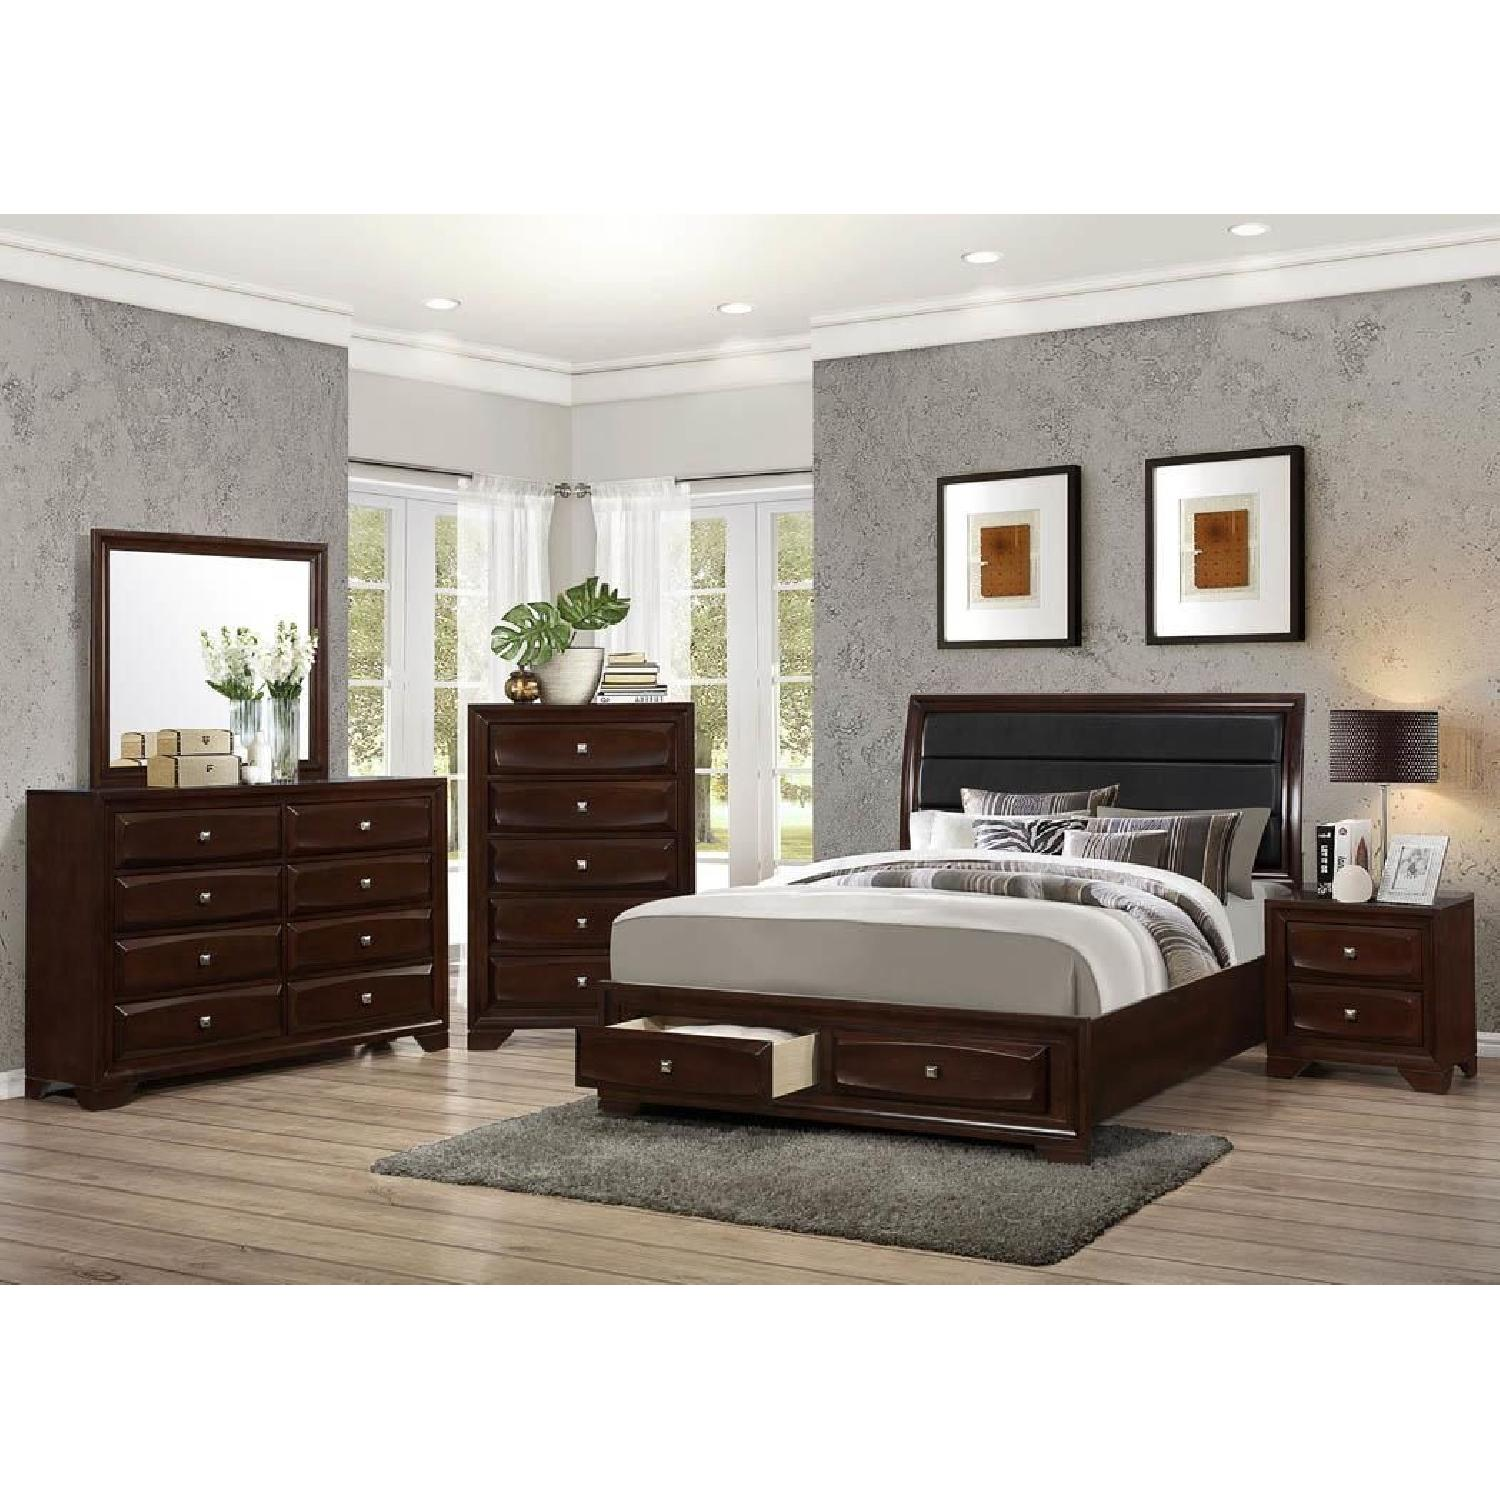 Nightstand in Cappuccino w/ Drawer Front Design - image-3